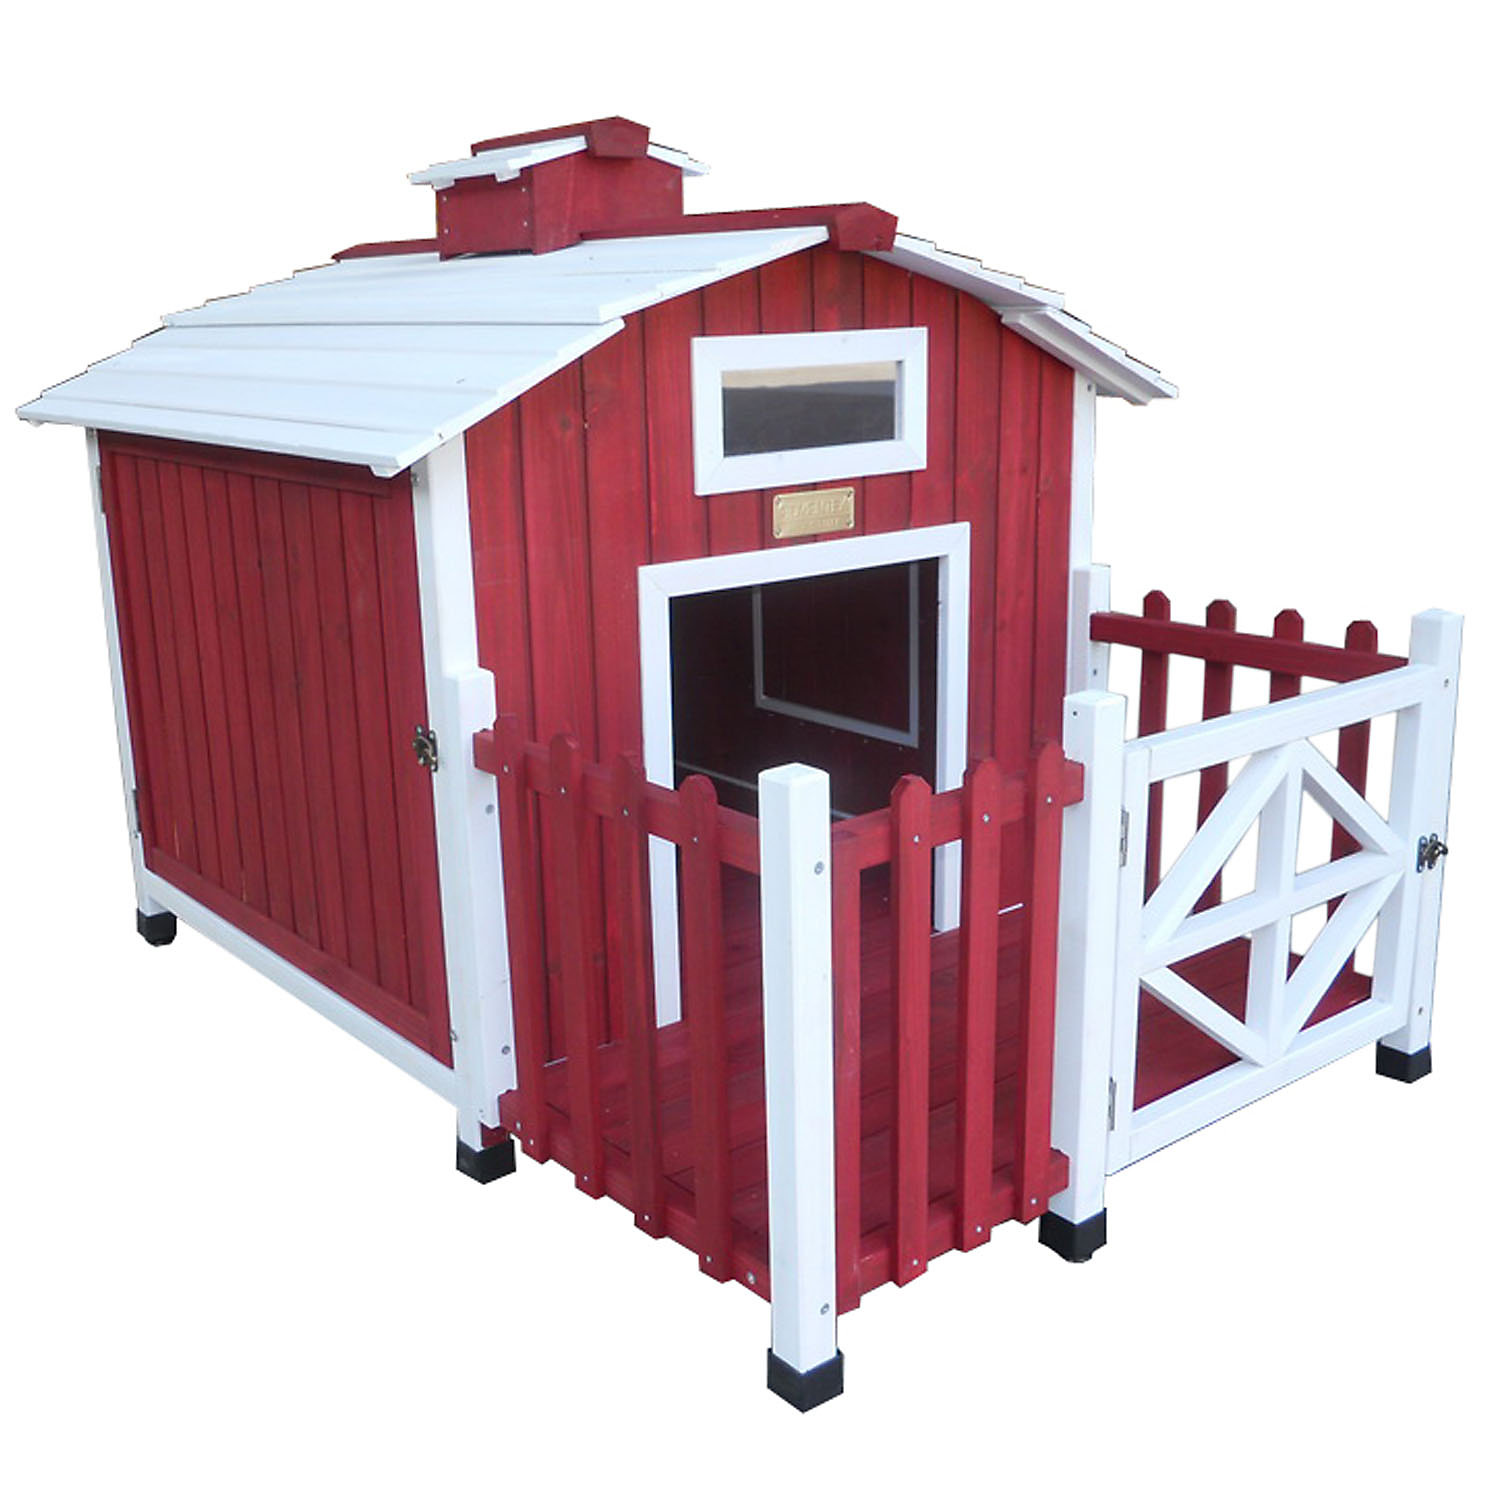 Upc 877370004378  Advantek Country Barn Red Wooden Dog. Build A Dynamic Website Mazda B Series Trucks. Coconino County Attorney Ventura County Court. Tampa Slip And Fall Attorney. Emc Support Phone Number Drug Addiction Cures. Fraternity Management Software. Consumer Products Safety Commission. Opt Out Email Marketing Private Equity Brazil. Business Opportunity Seeker Leads